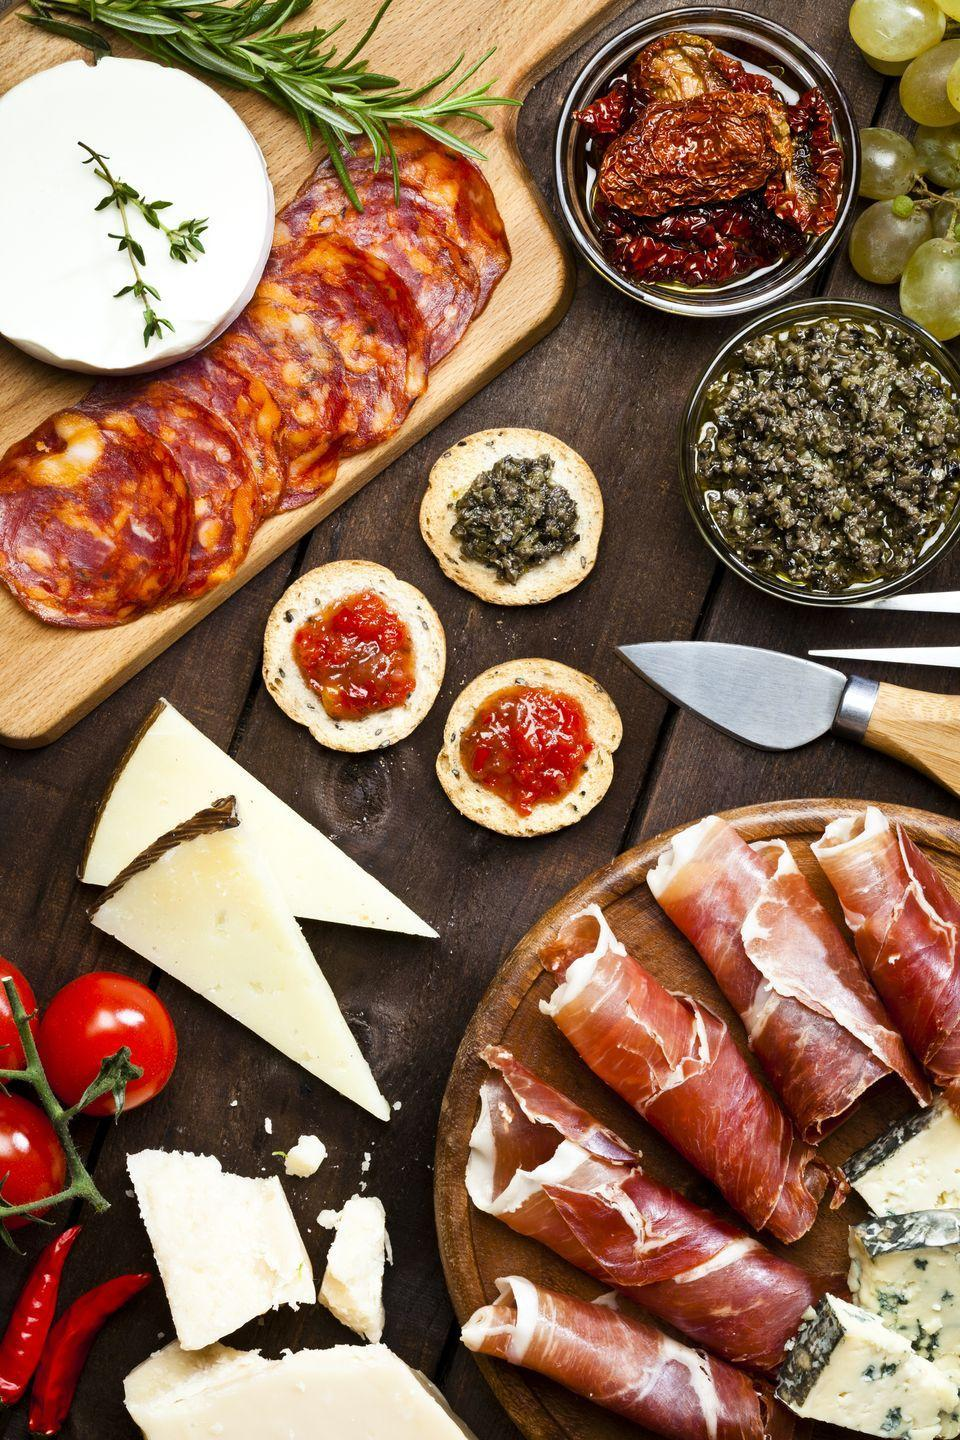 """<p>Whip up a bunch of different tapas instead of a big dinner so that you can taste as much as you want.</p><p><a class=""""link rapid-noclick-resp"""" href=""""https://www.amazon.com/Unique-Charcuterie-Platter-Serving-Crackers/dp/B0723B35QQ/?tag=syn-yahoo-20&ascsubtag=%5Bartid%7C10050.g.30445302%5Bsrc%7Cyahoo-us"""" rel=""""nofollow noopener"""" target=""""_blank"""" data-ylk=""""slk:SHOP CHEESE BOARDS"""">SHOP CHEESE BOARDS</a></p>"""